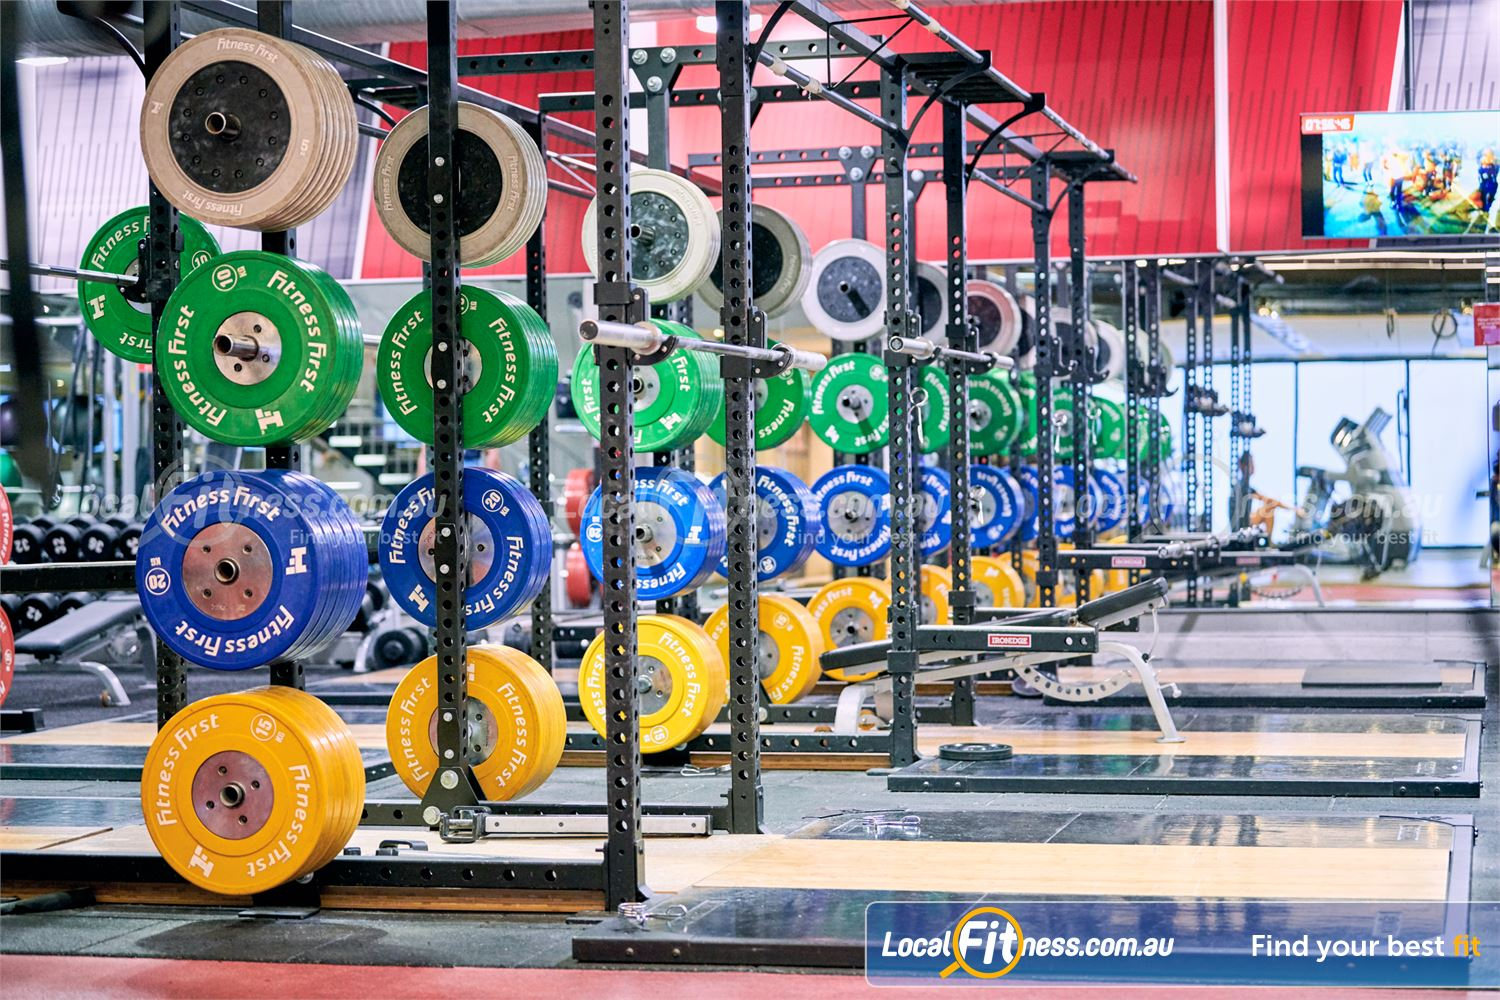 Fitness First Macquarie Near Denistone Our Macquariegym is fully equipped for strength training.